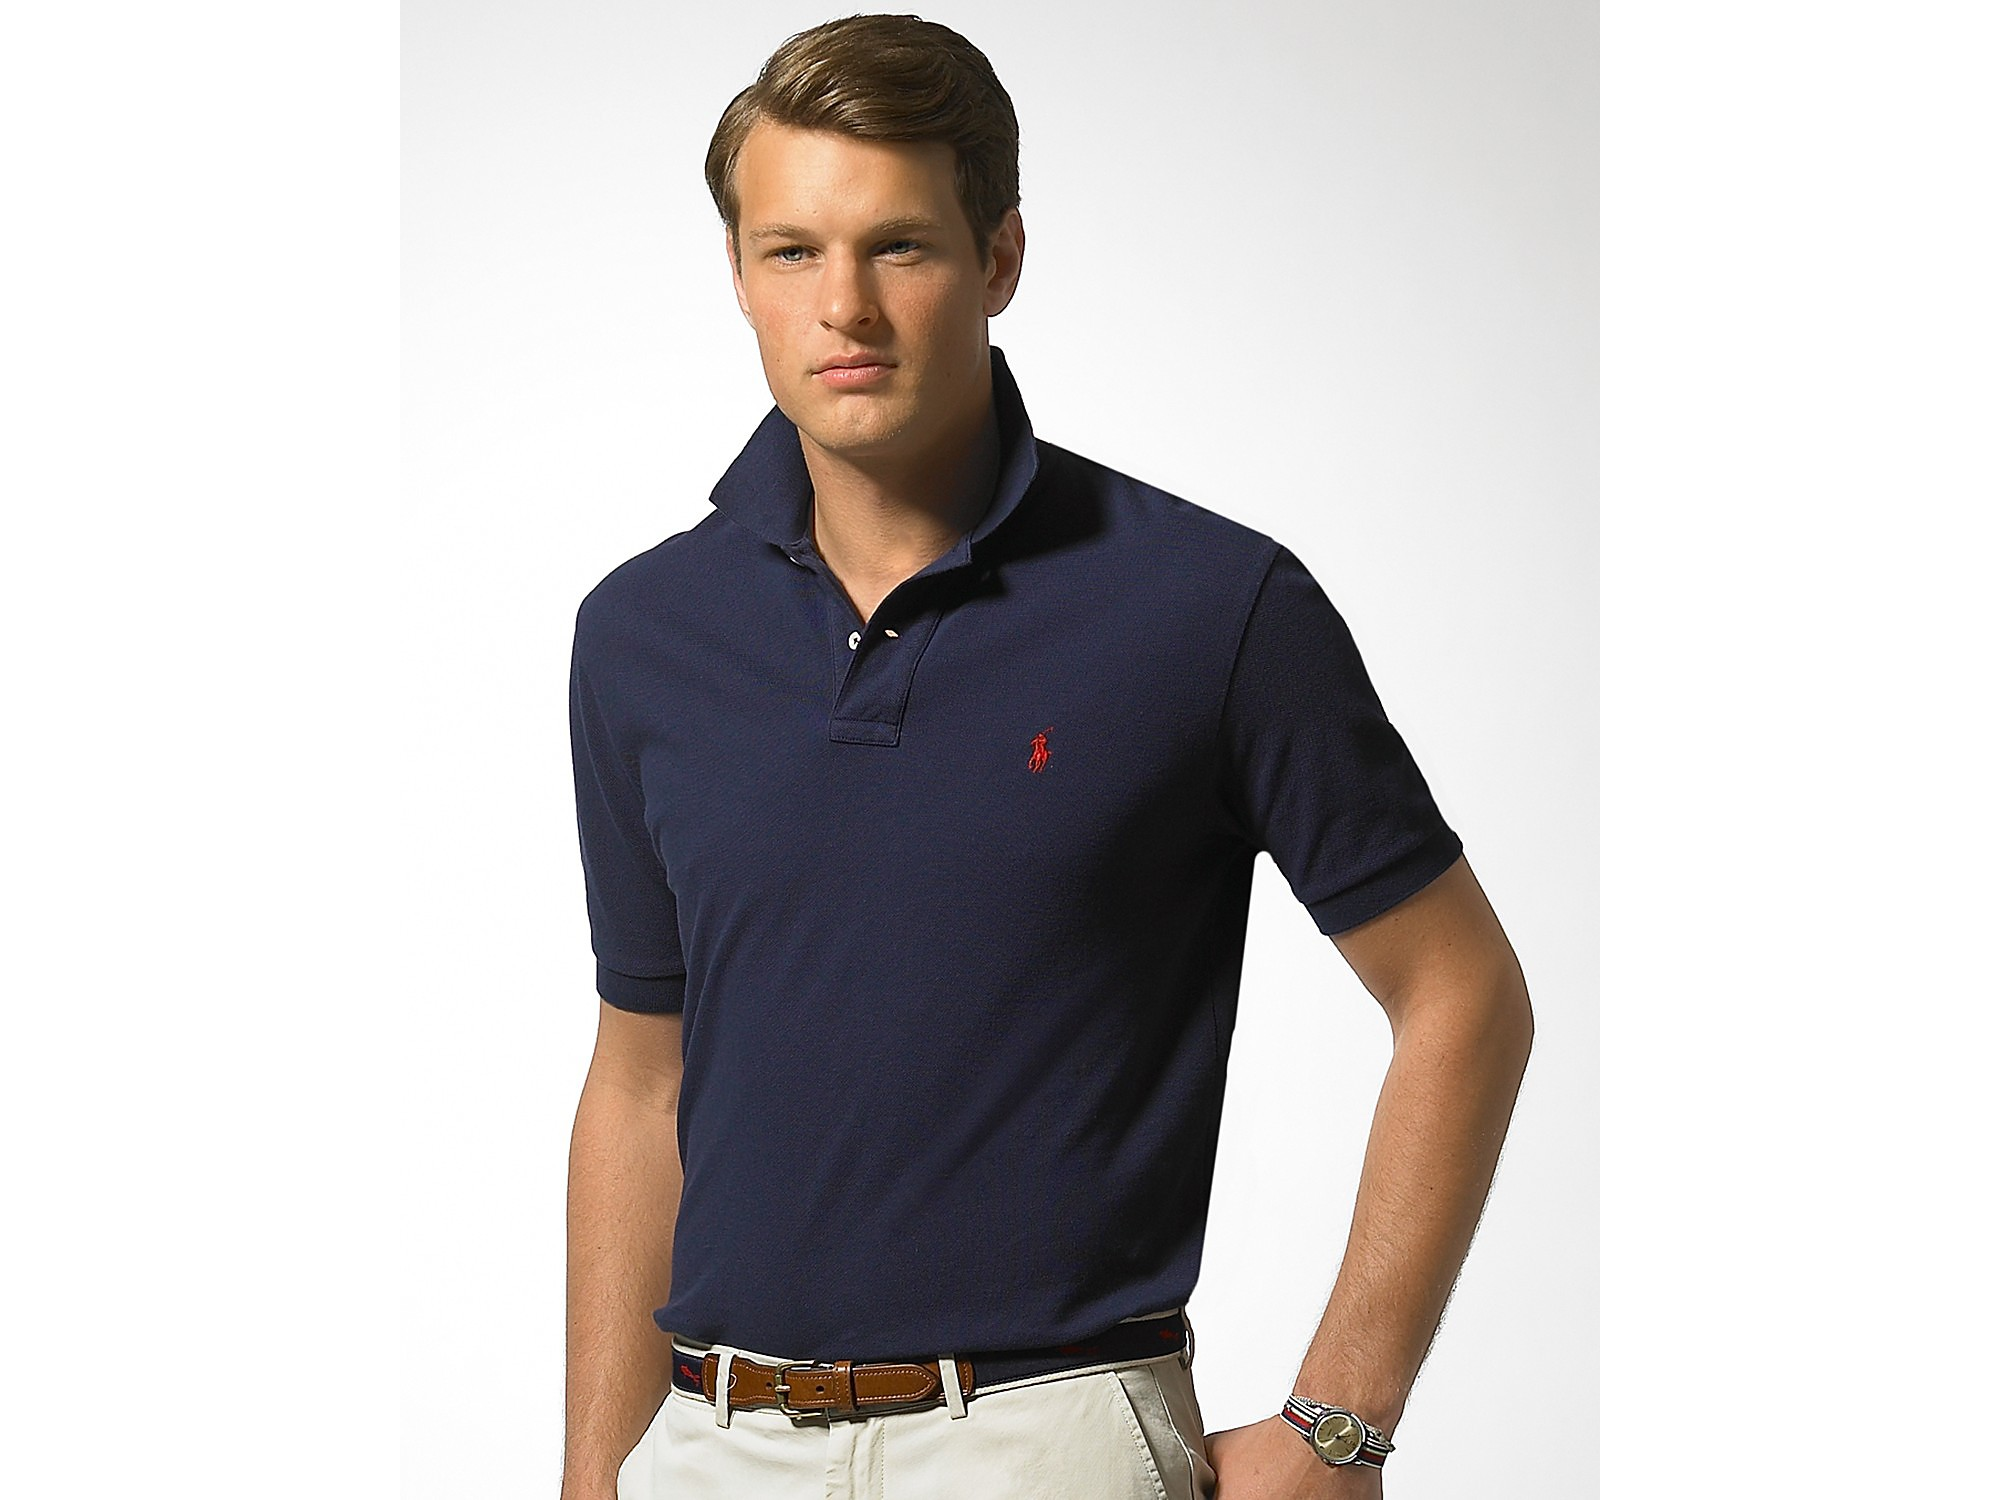 Lyst - Polo Ralph Lauren Classic Fit Short Sleeved Cotton Mesh Polo ... 9cb7c39e1bea